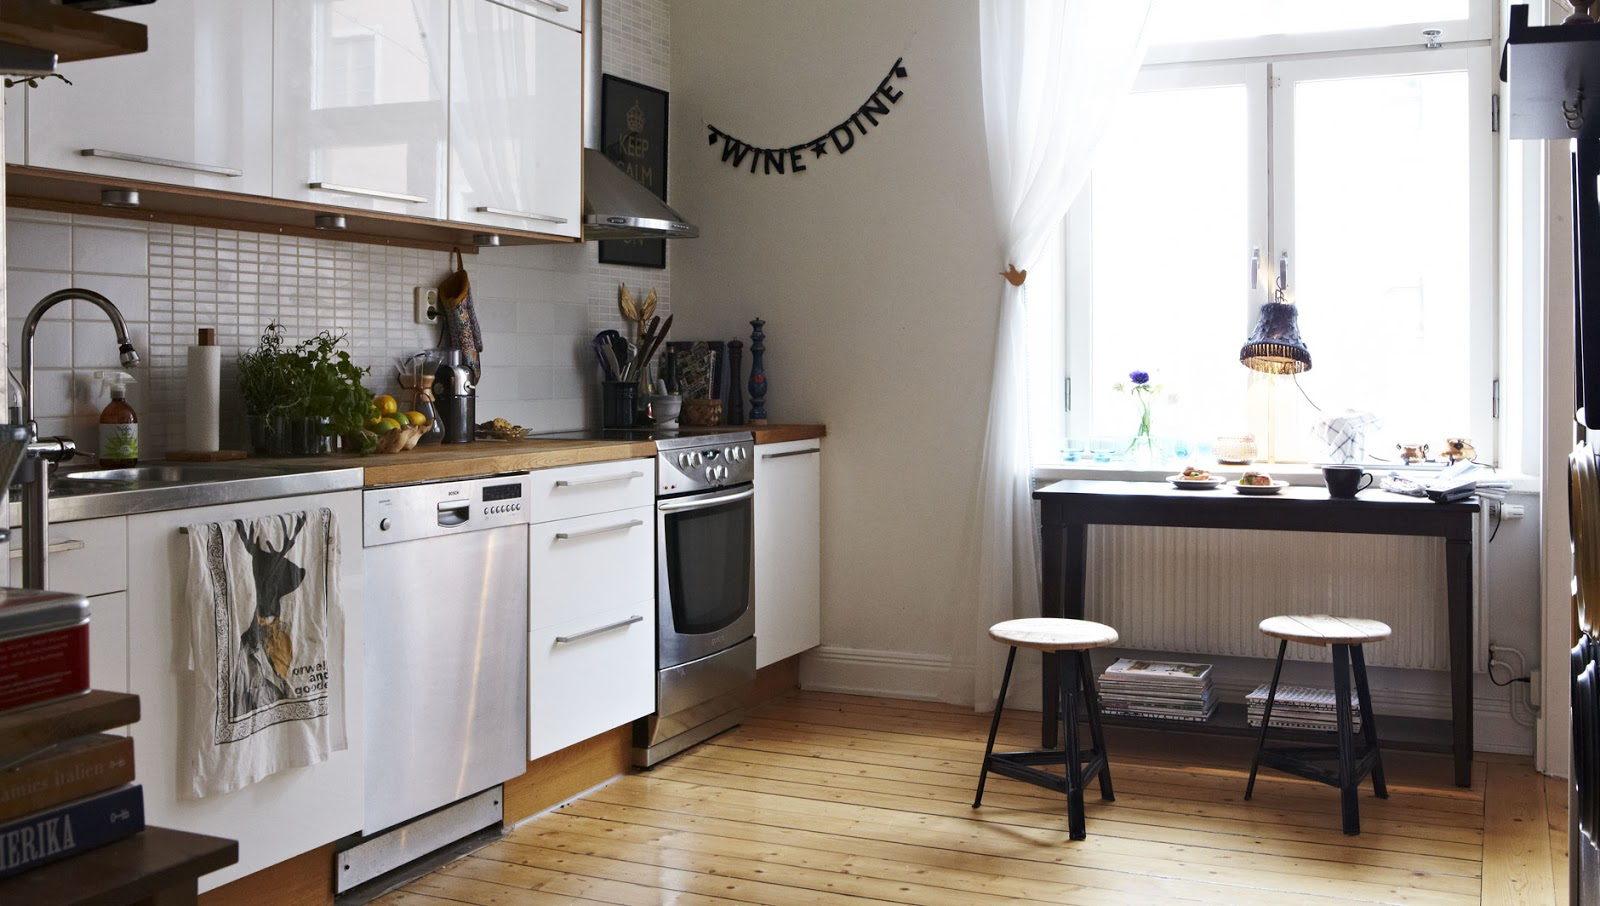 Trendesso kandin vske kuchyne so stolmi scandinavian kitchen with tables Scandinavian kitchen designs